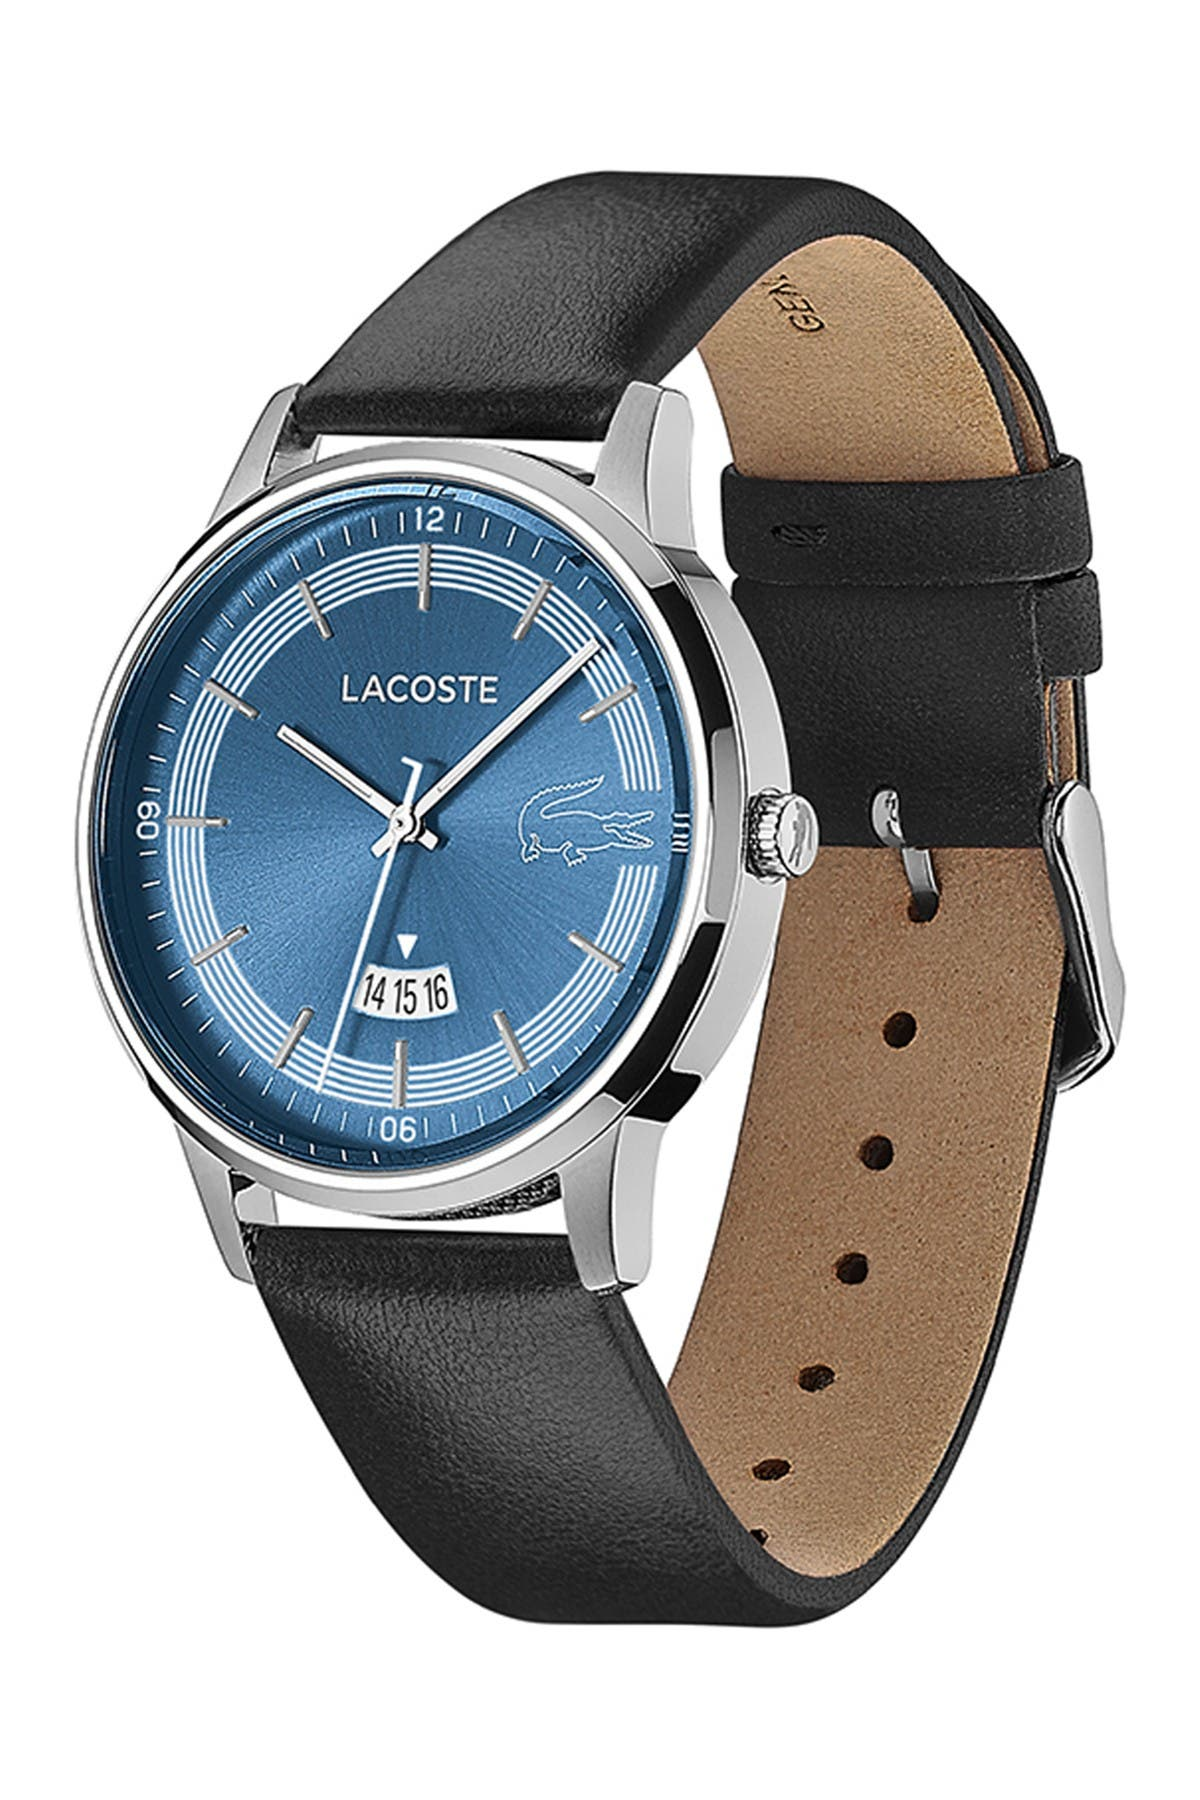 Image of Lacoste Men's Madrid Leather Strap Watch, 41mm